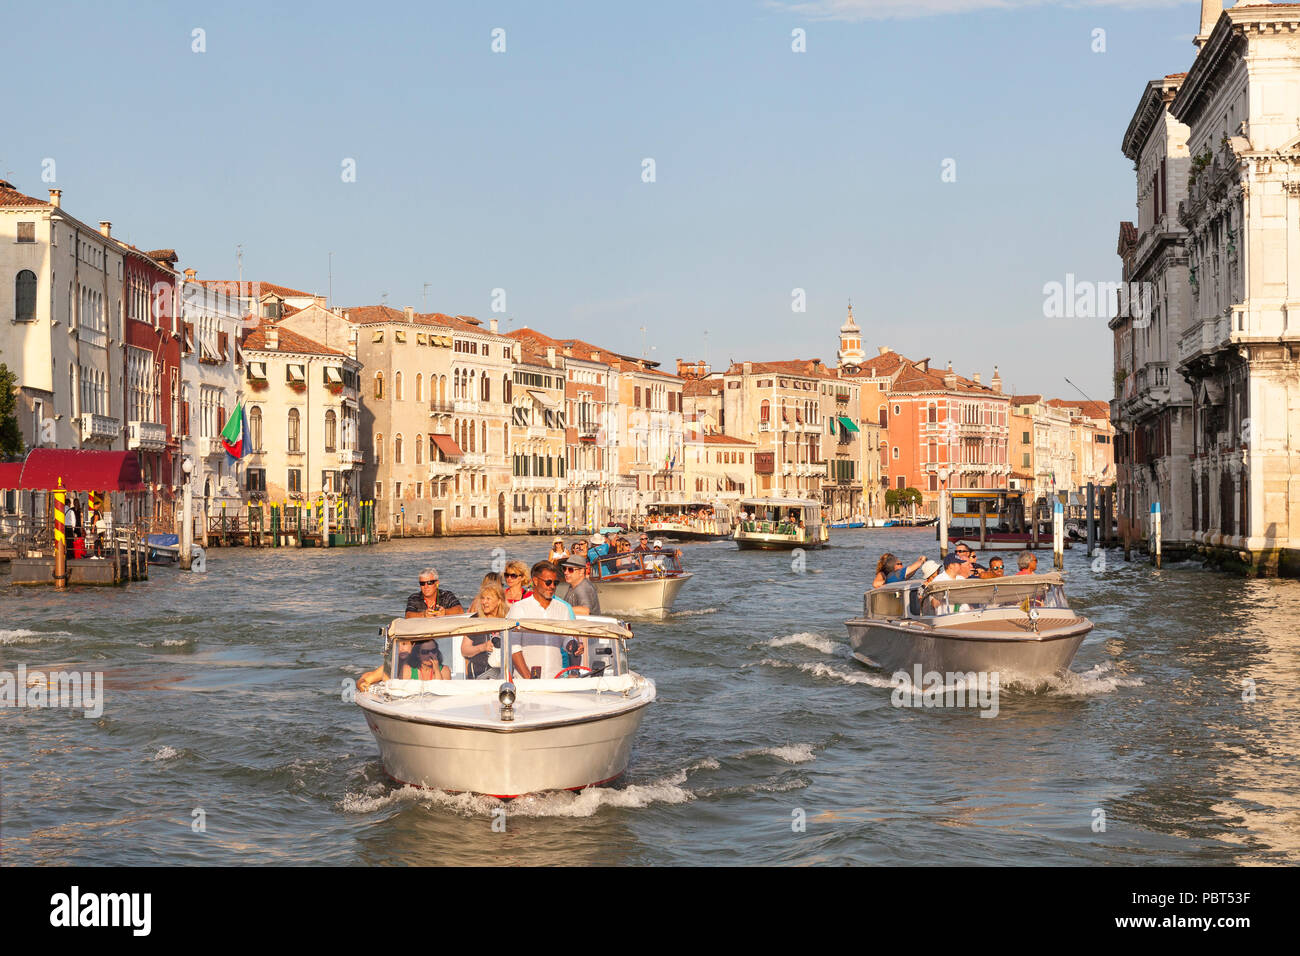 Water taxis with tour groups on the Grand Canal at sunset, Venice, Veneto, Italy passing the historic palazzos, palaces of Cannaregio. Busy water traf - Stock Image